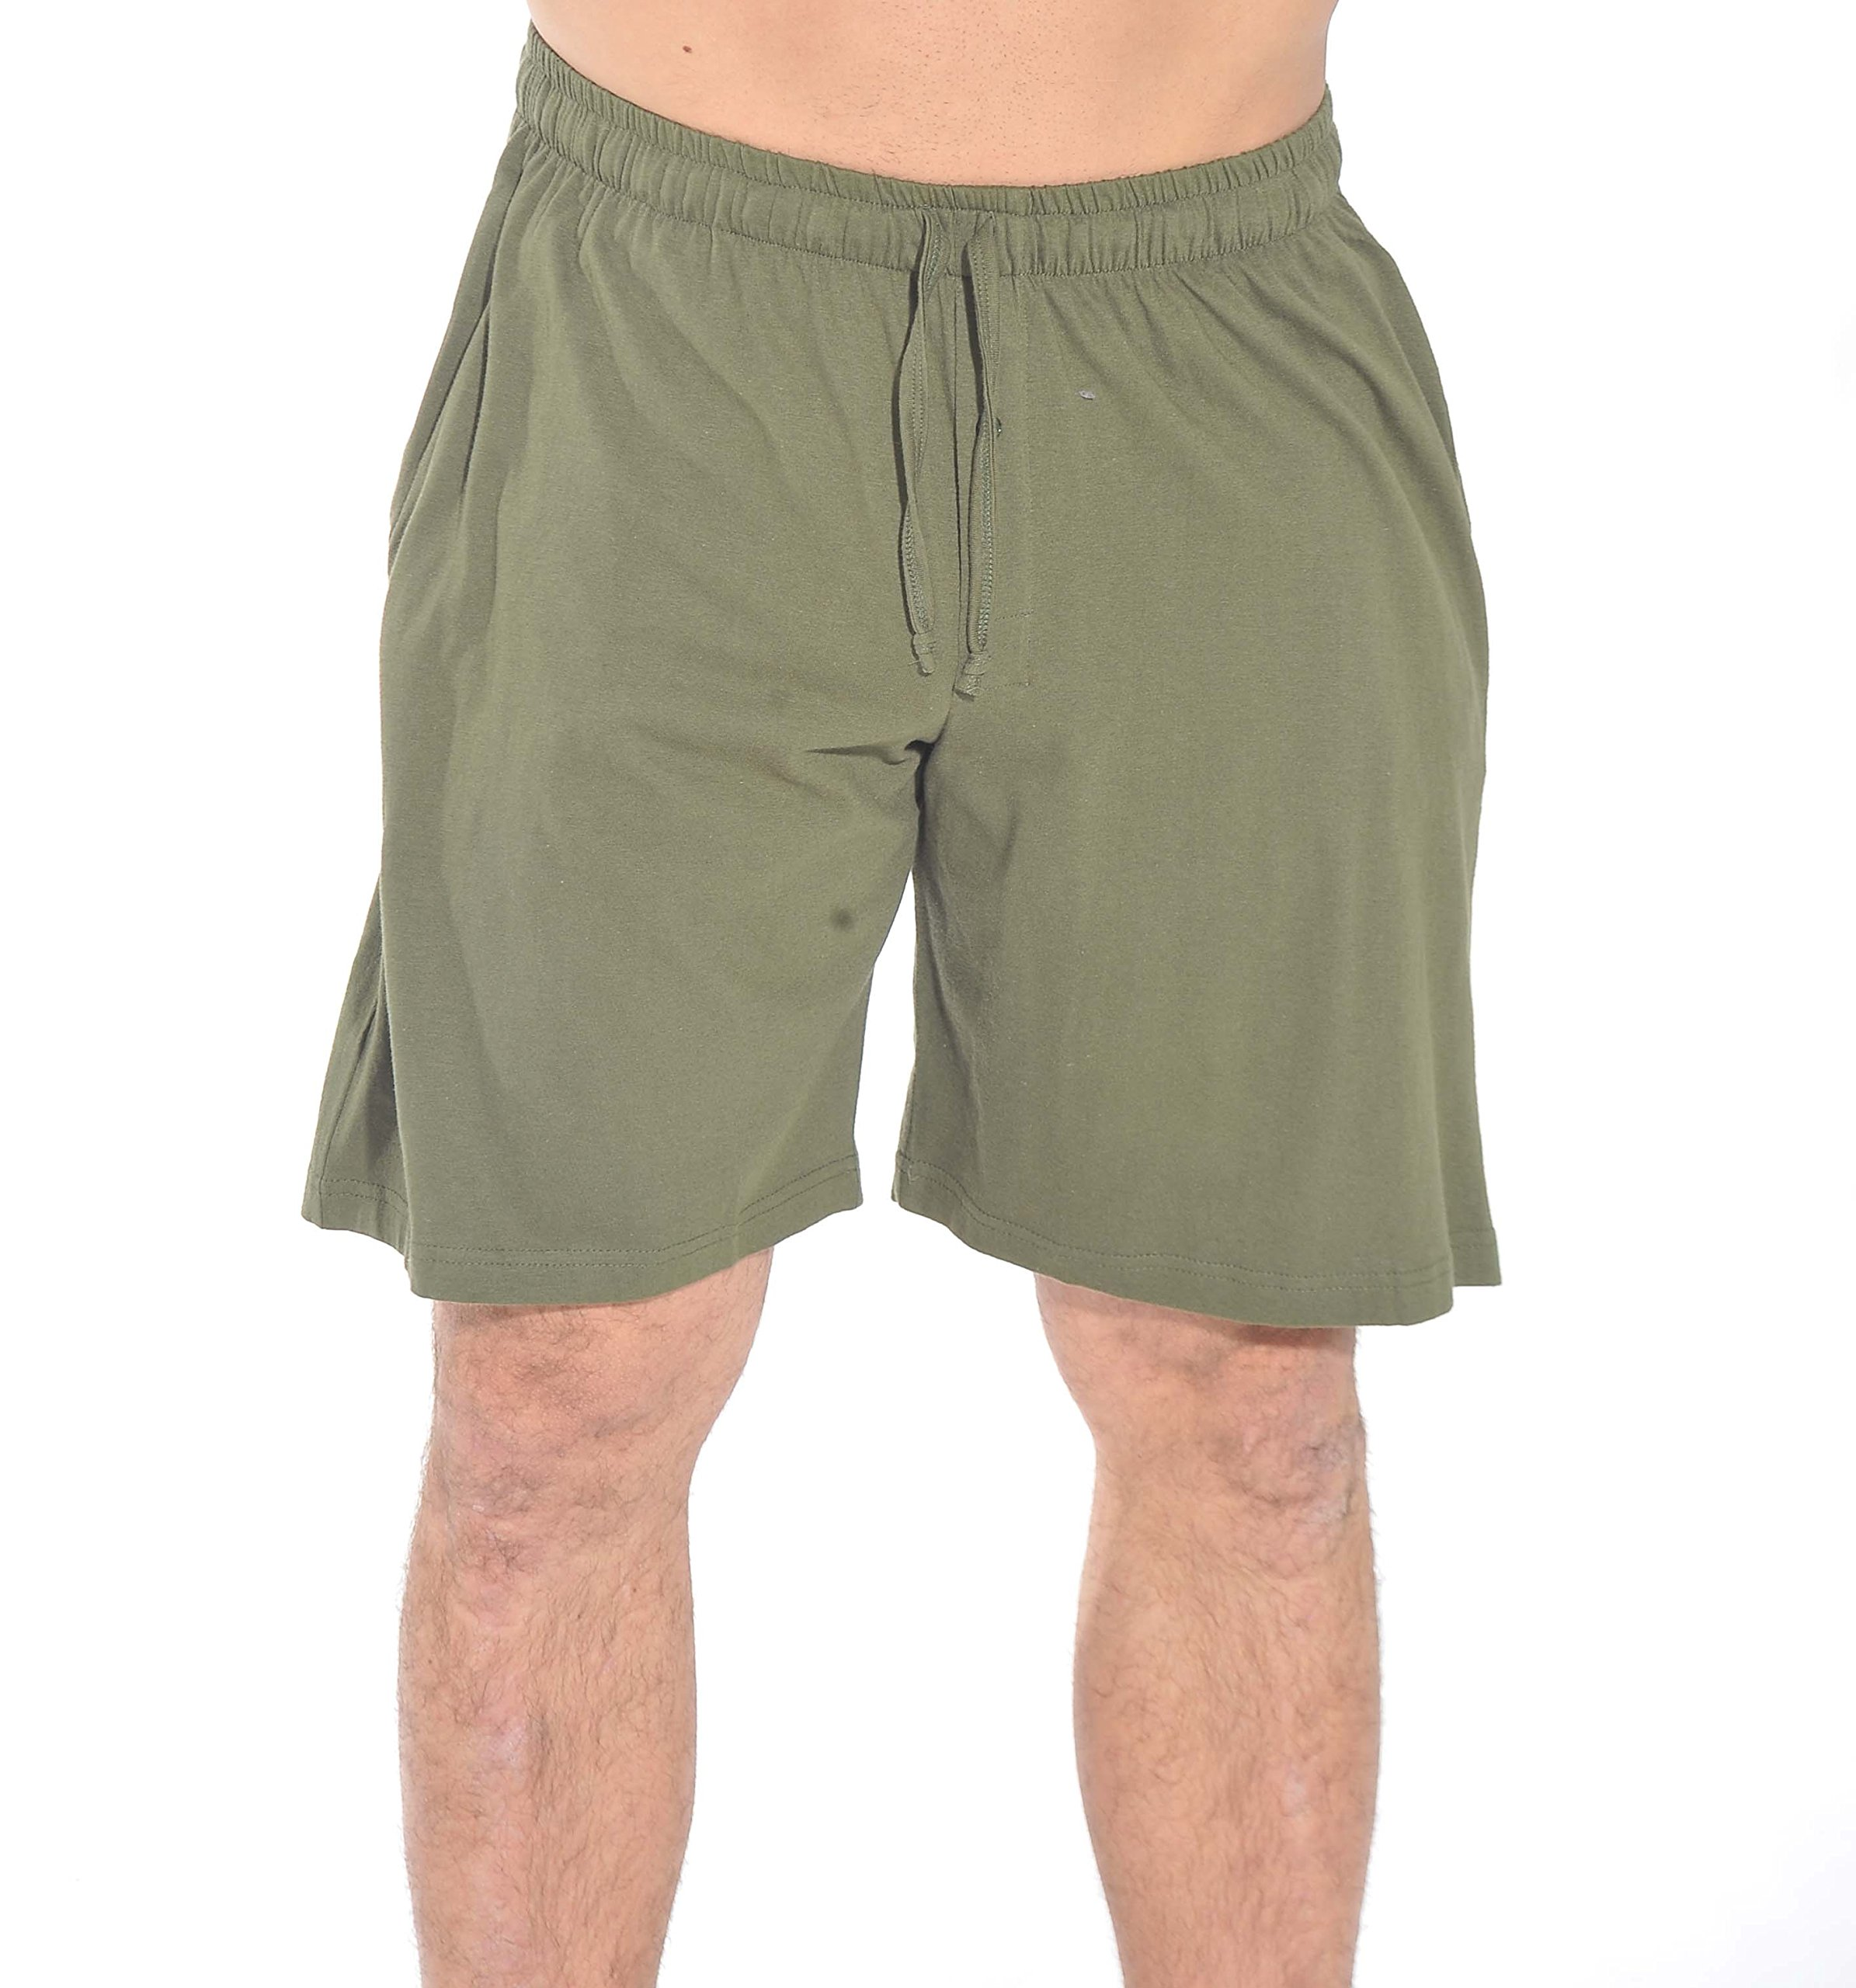 At The Buzzer 14501-Olive-M Men's Pajama Shorts/Sleepwear/PJS